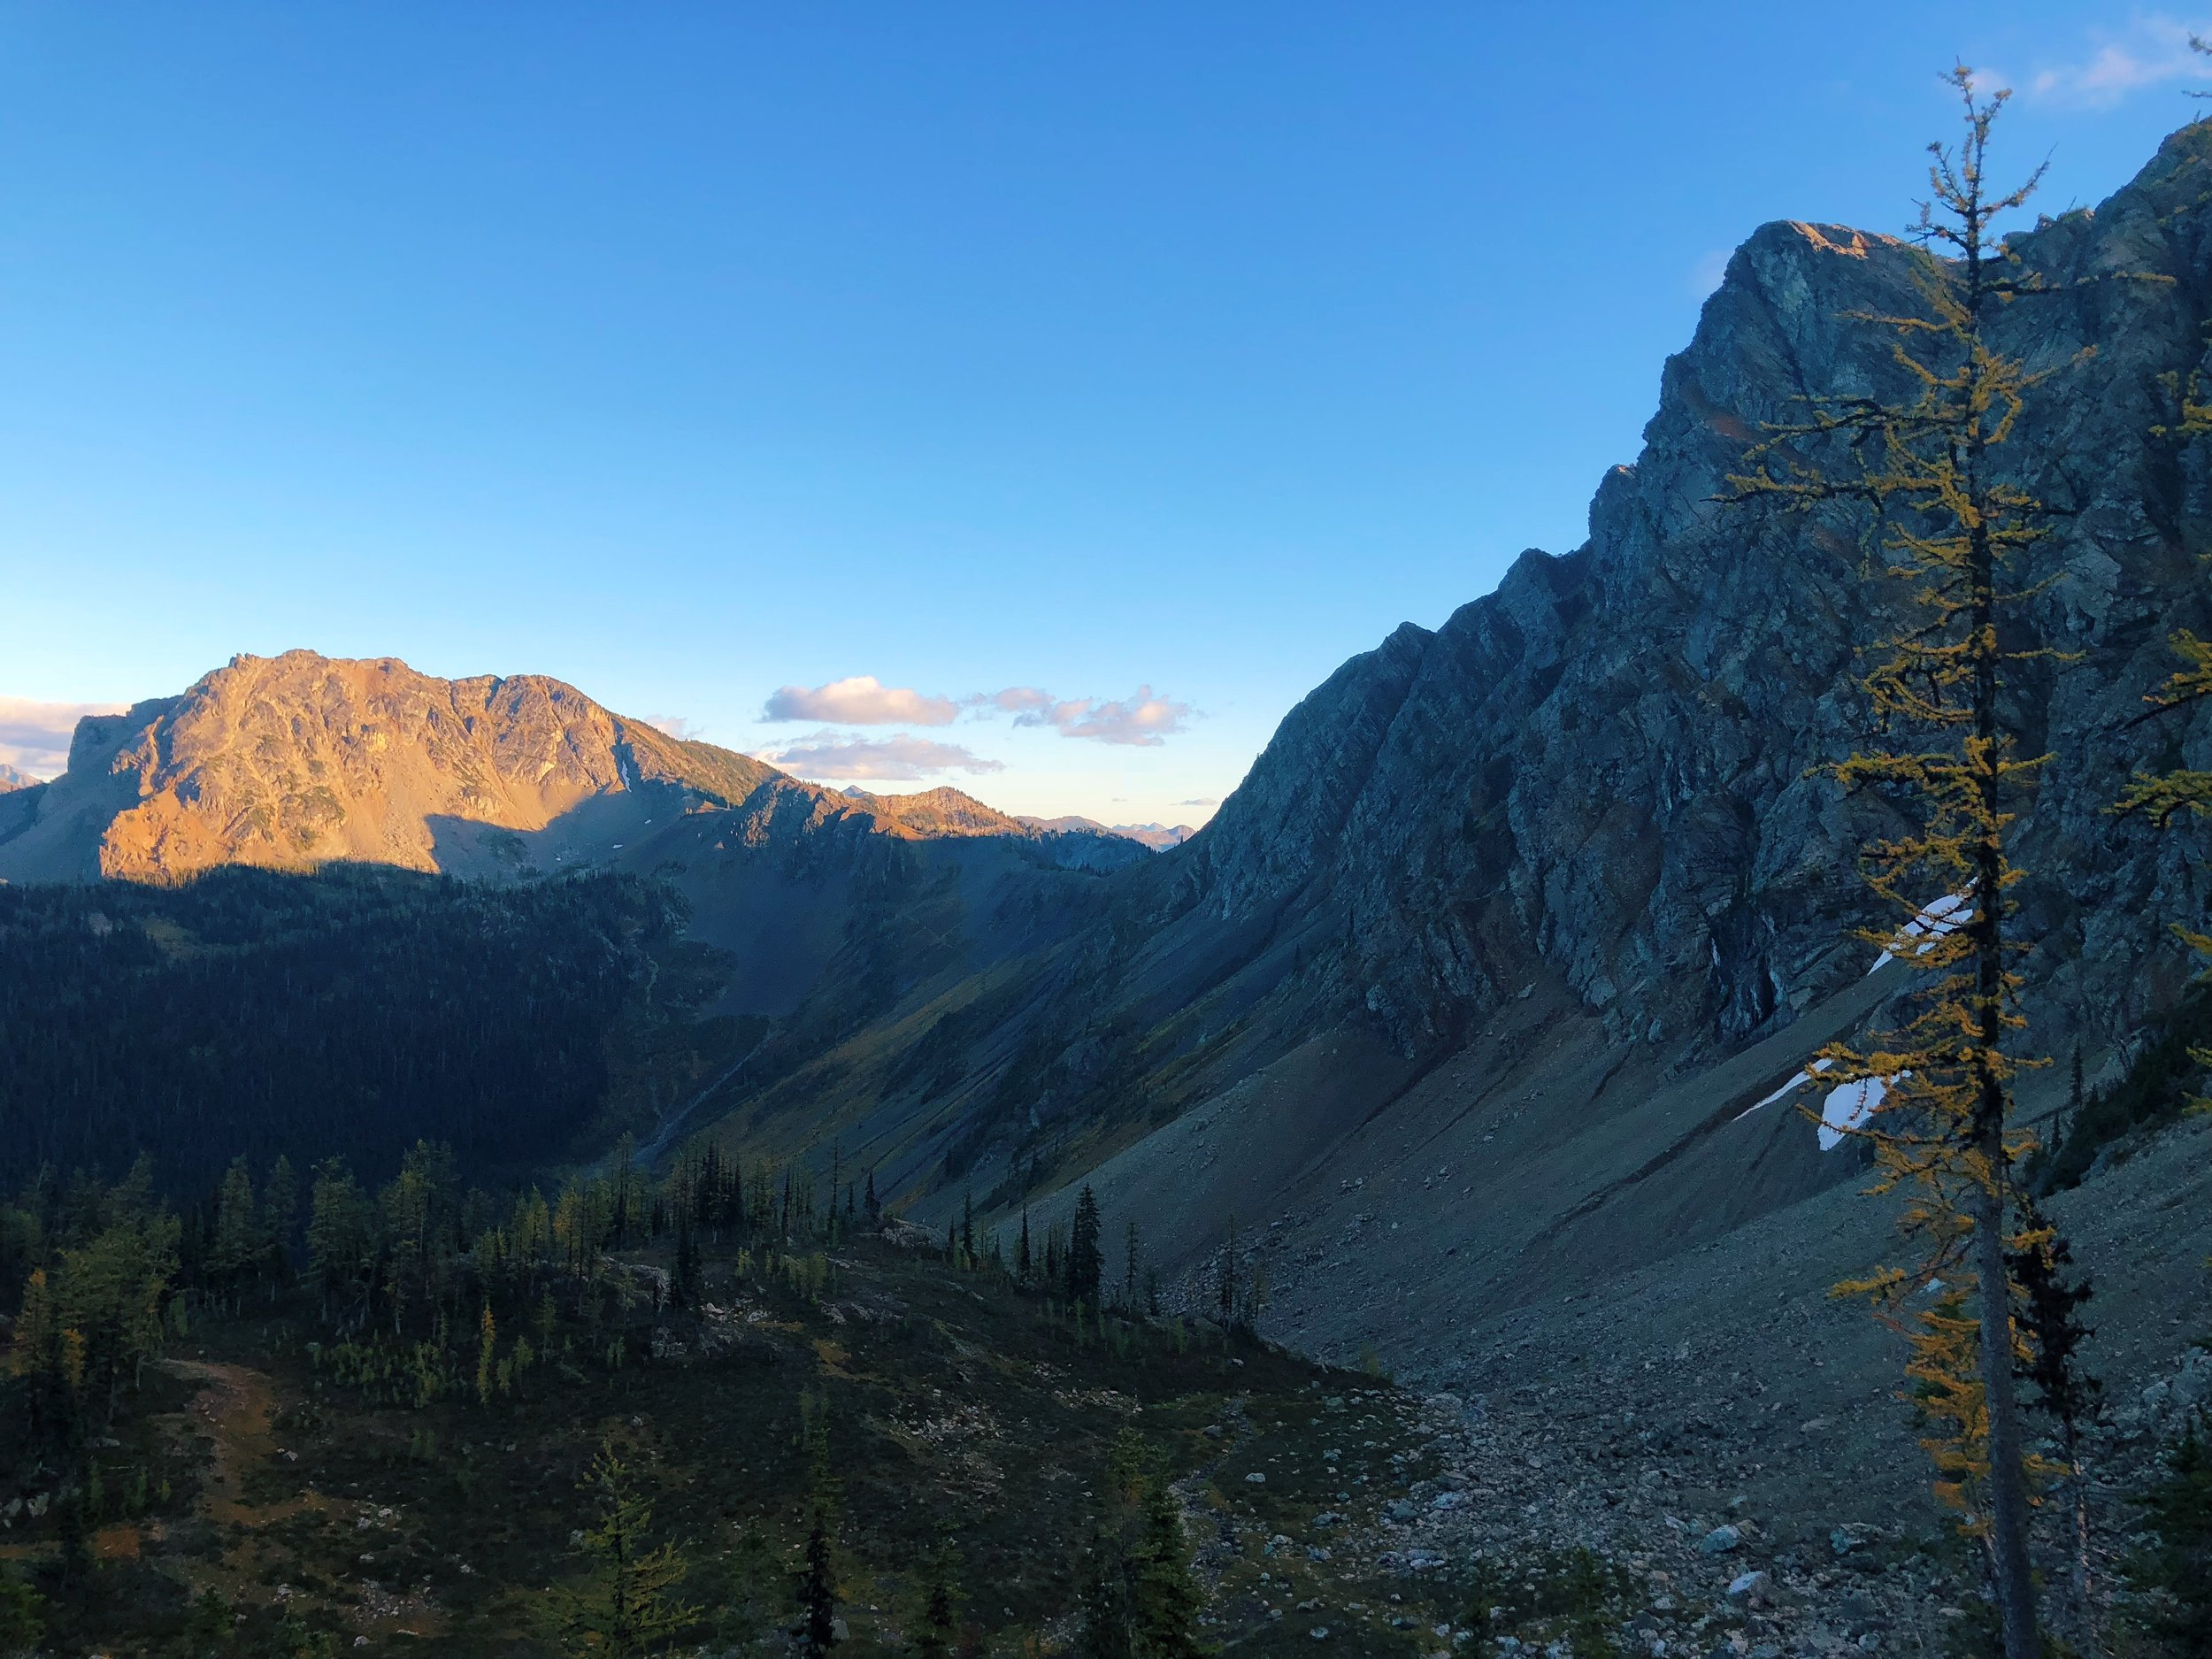 Views from my last campsite at Woody Pass